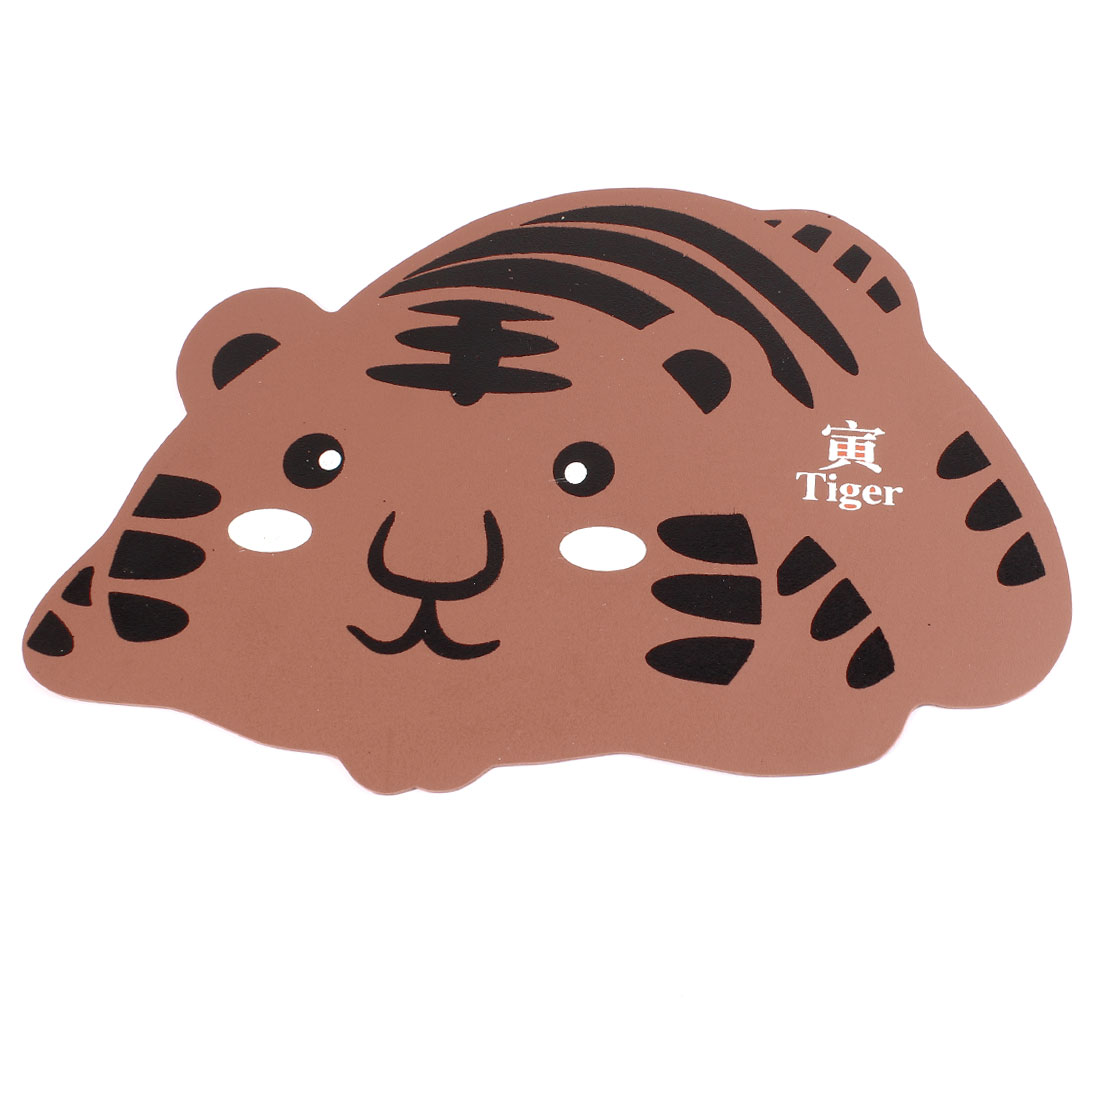 Desktop-Chinese-Zodiac-Cartoon-Tiger-Rubber-Mouse-Pad-Mat-Brown-Black